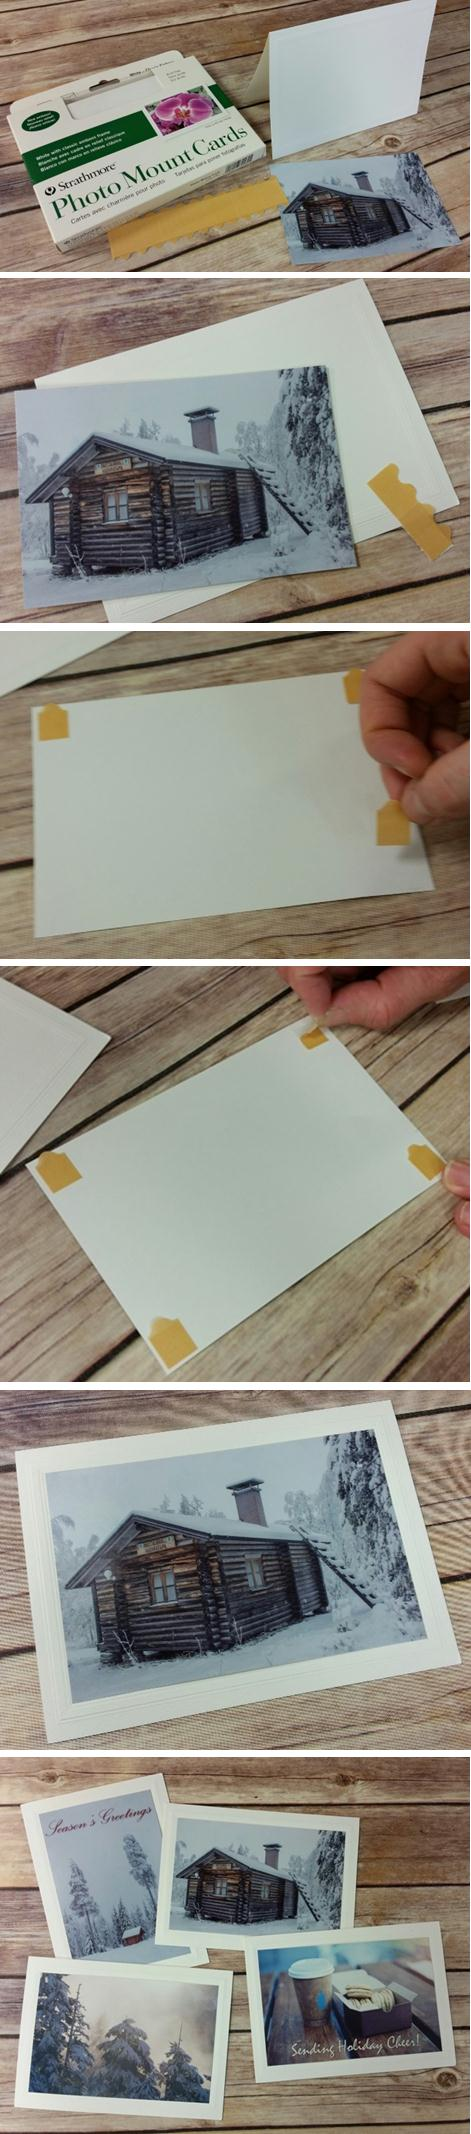 How-to Photo Mount Cards